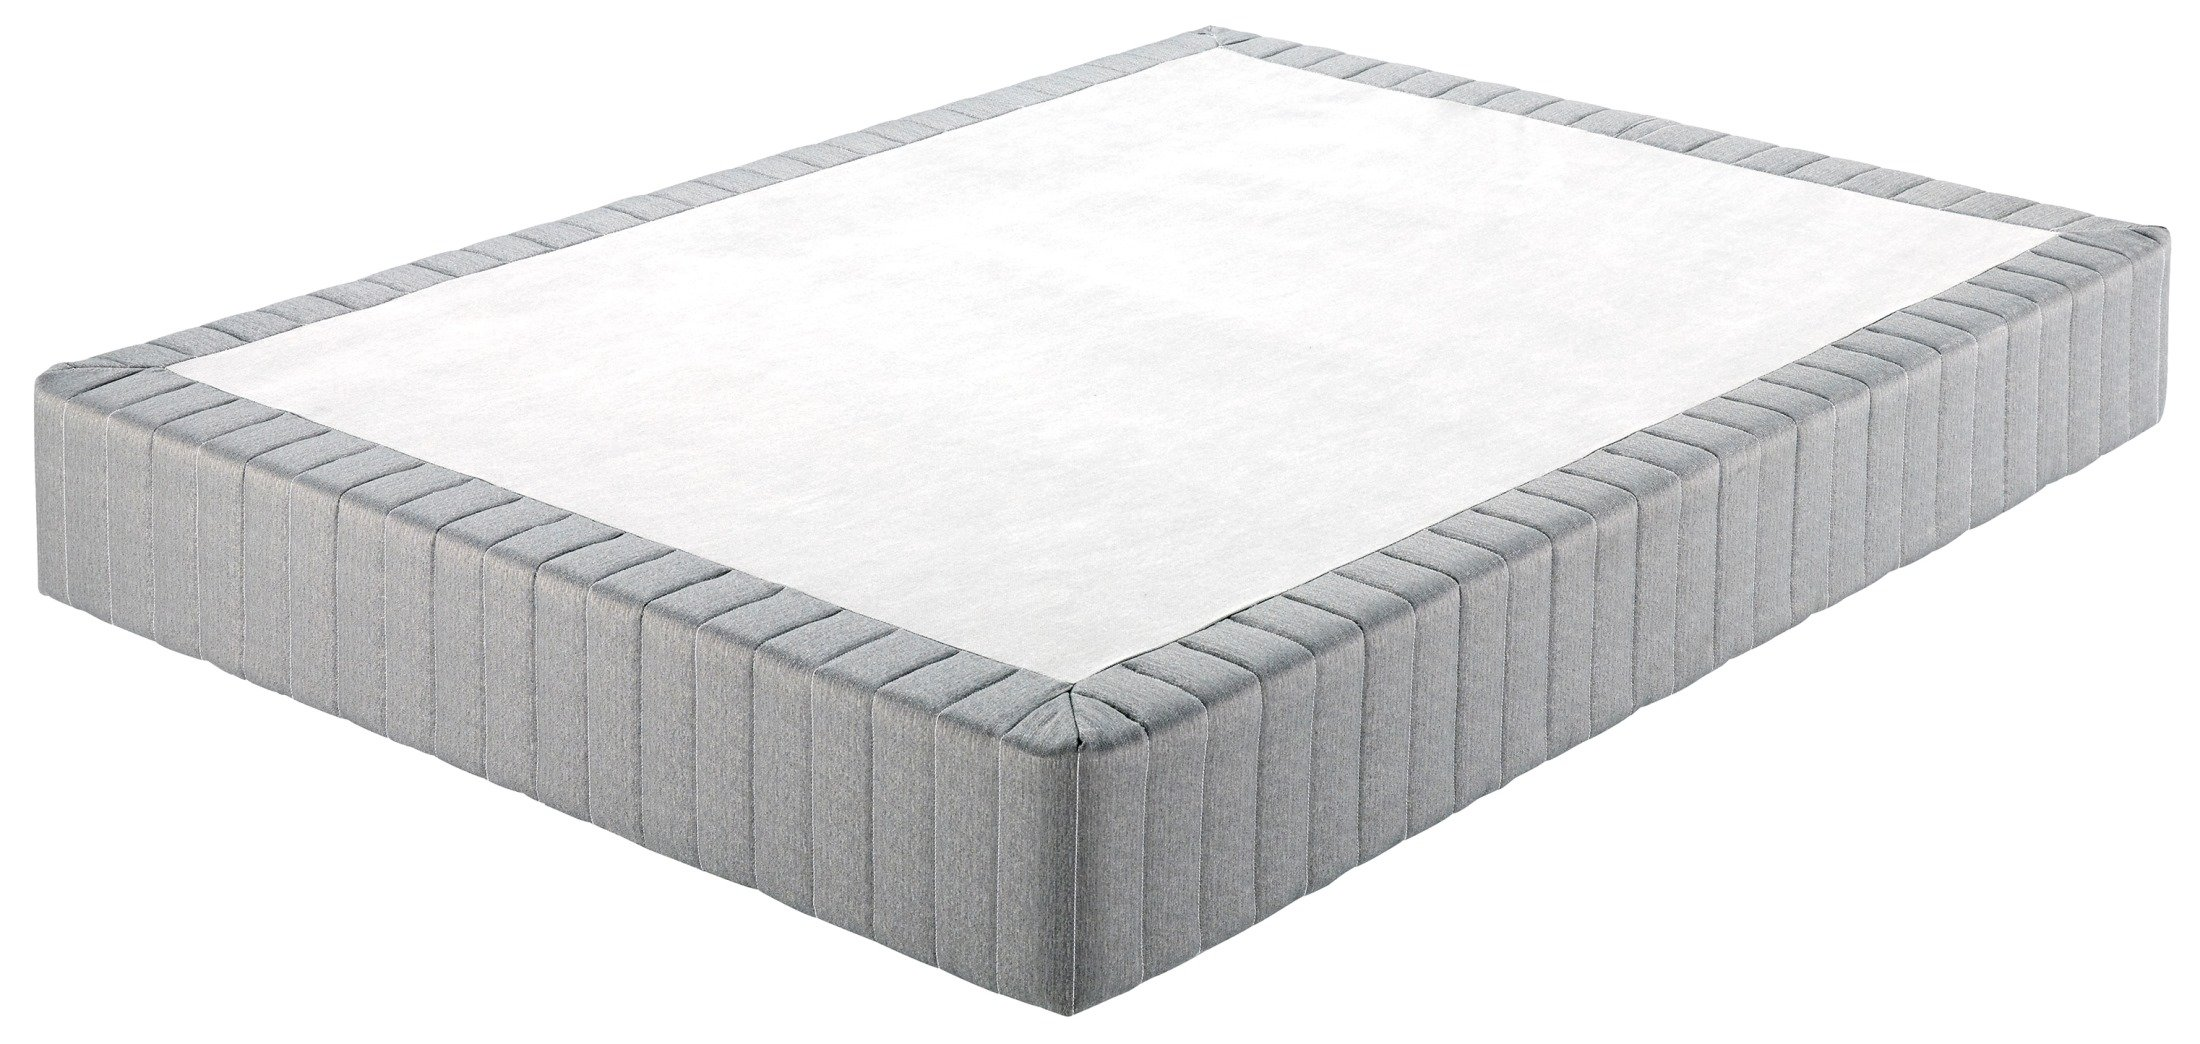 Ashley Furniture Signature Design - Ashley Sleep - Traditional Queen Size Mattress Foundation - Gray